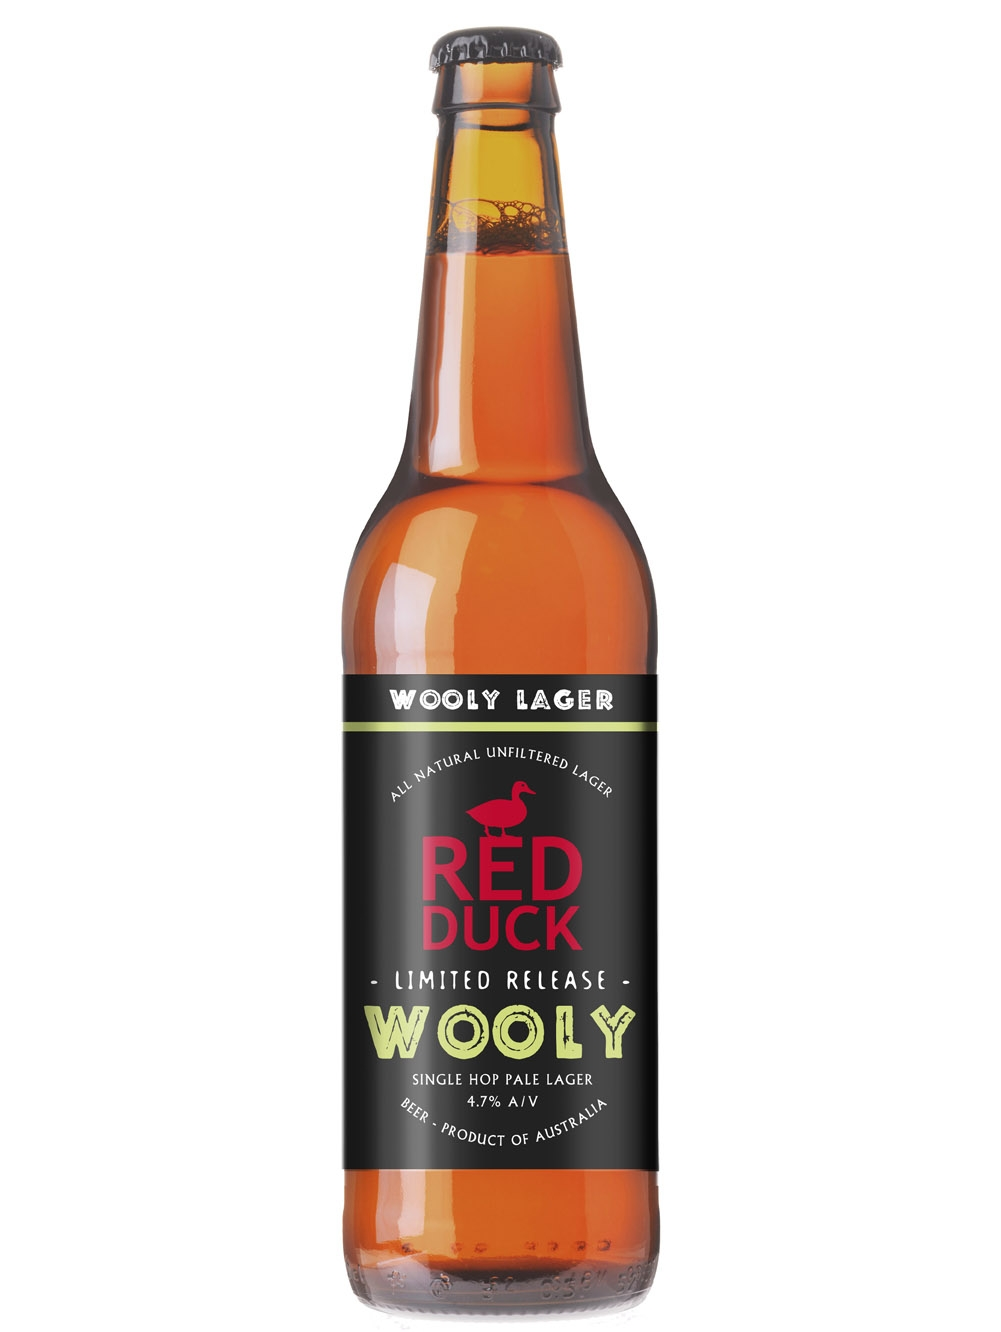 Wooly Lager